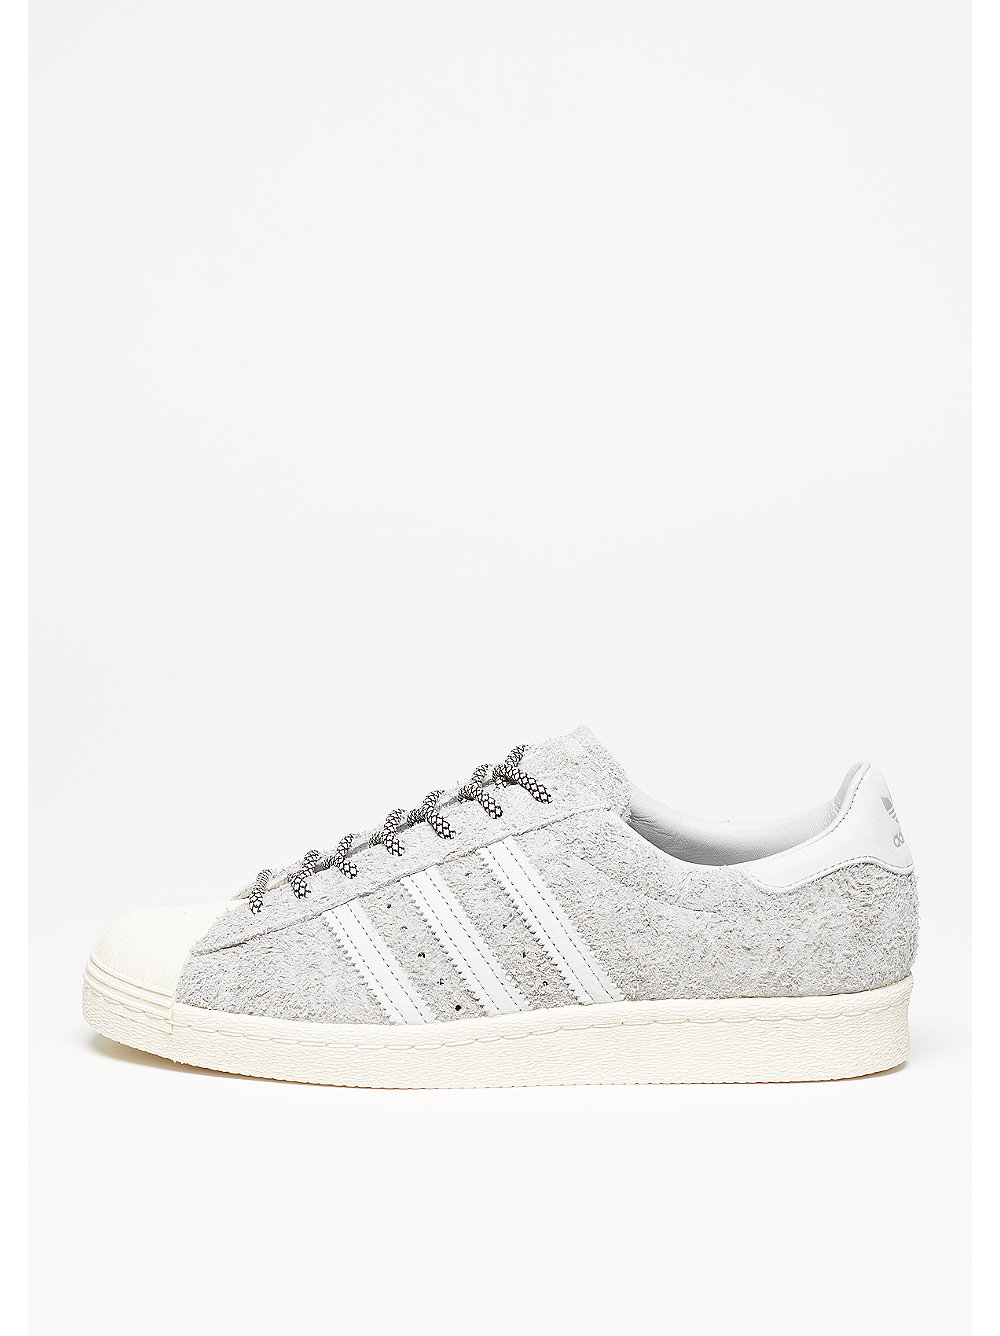 adidas Superstar 80s clear onix-clear grey-chalk white